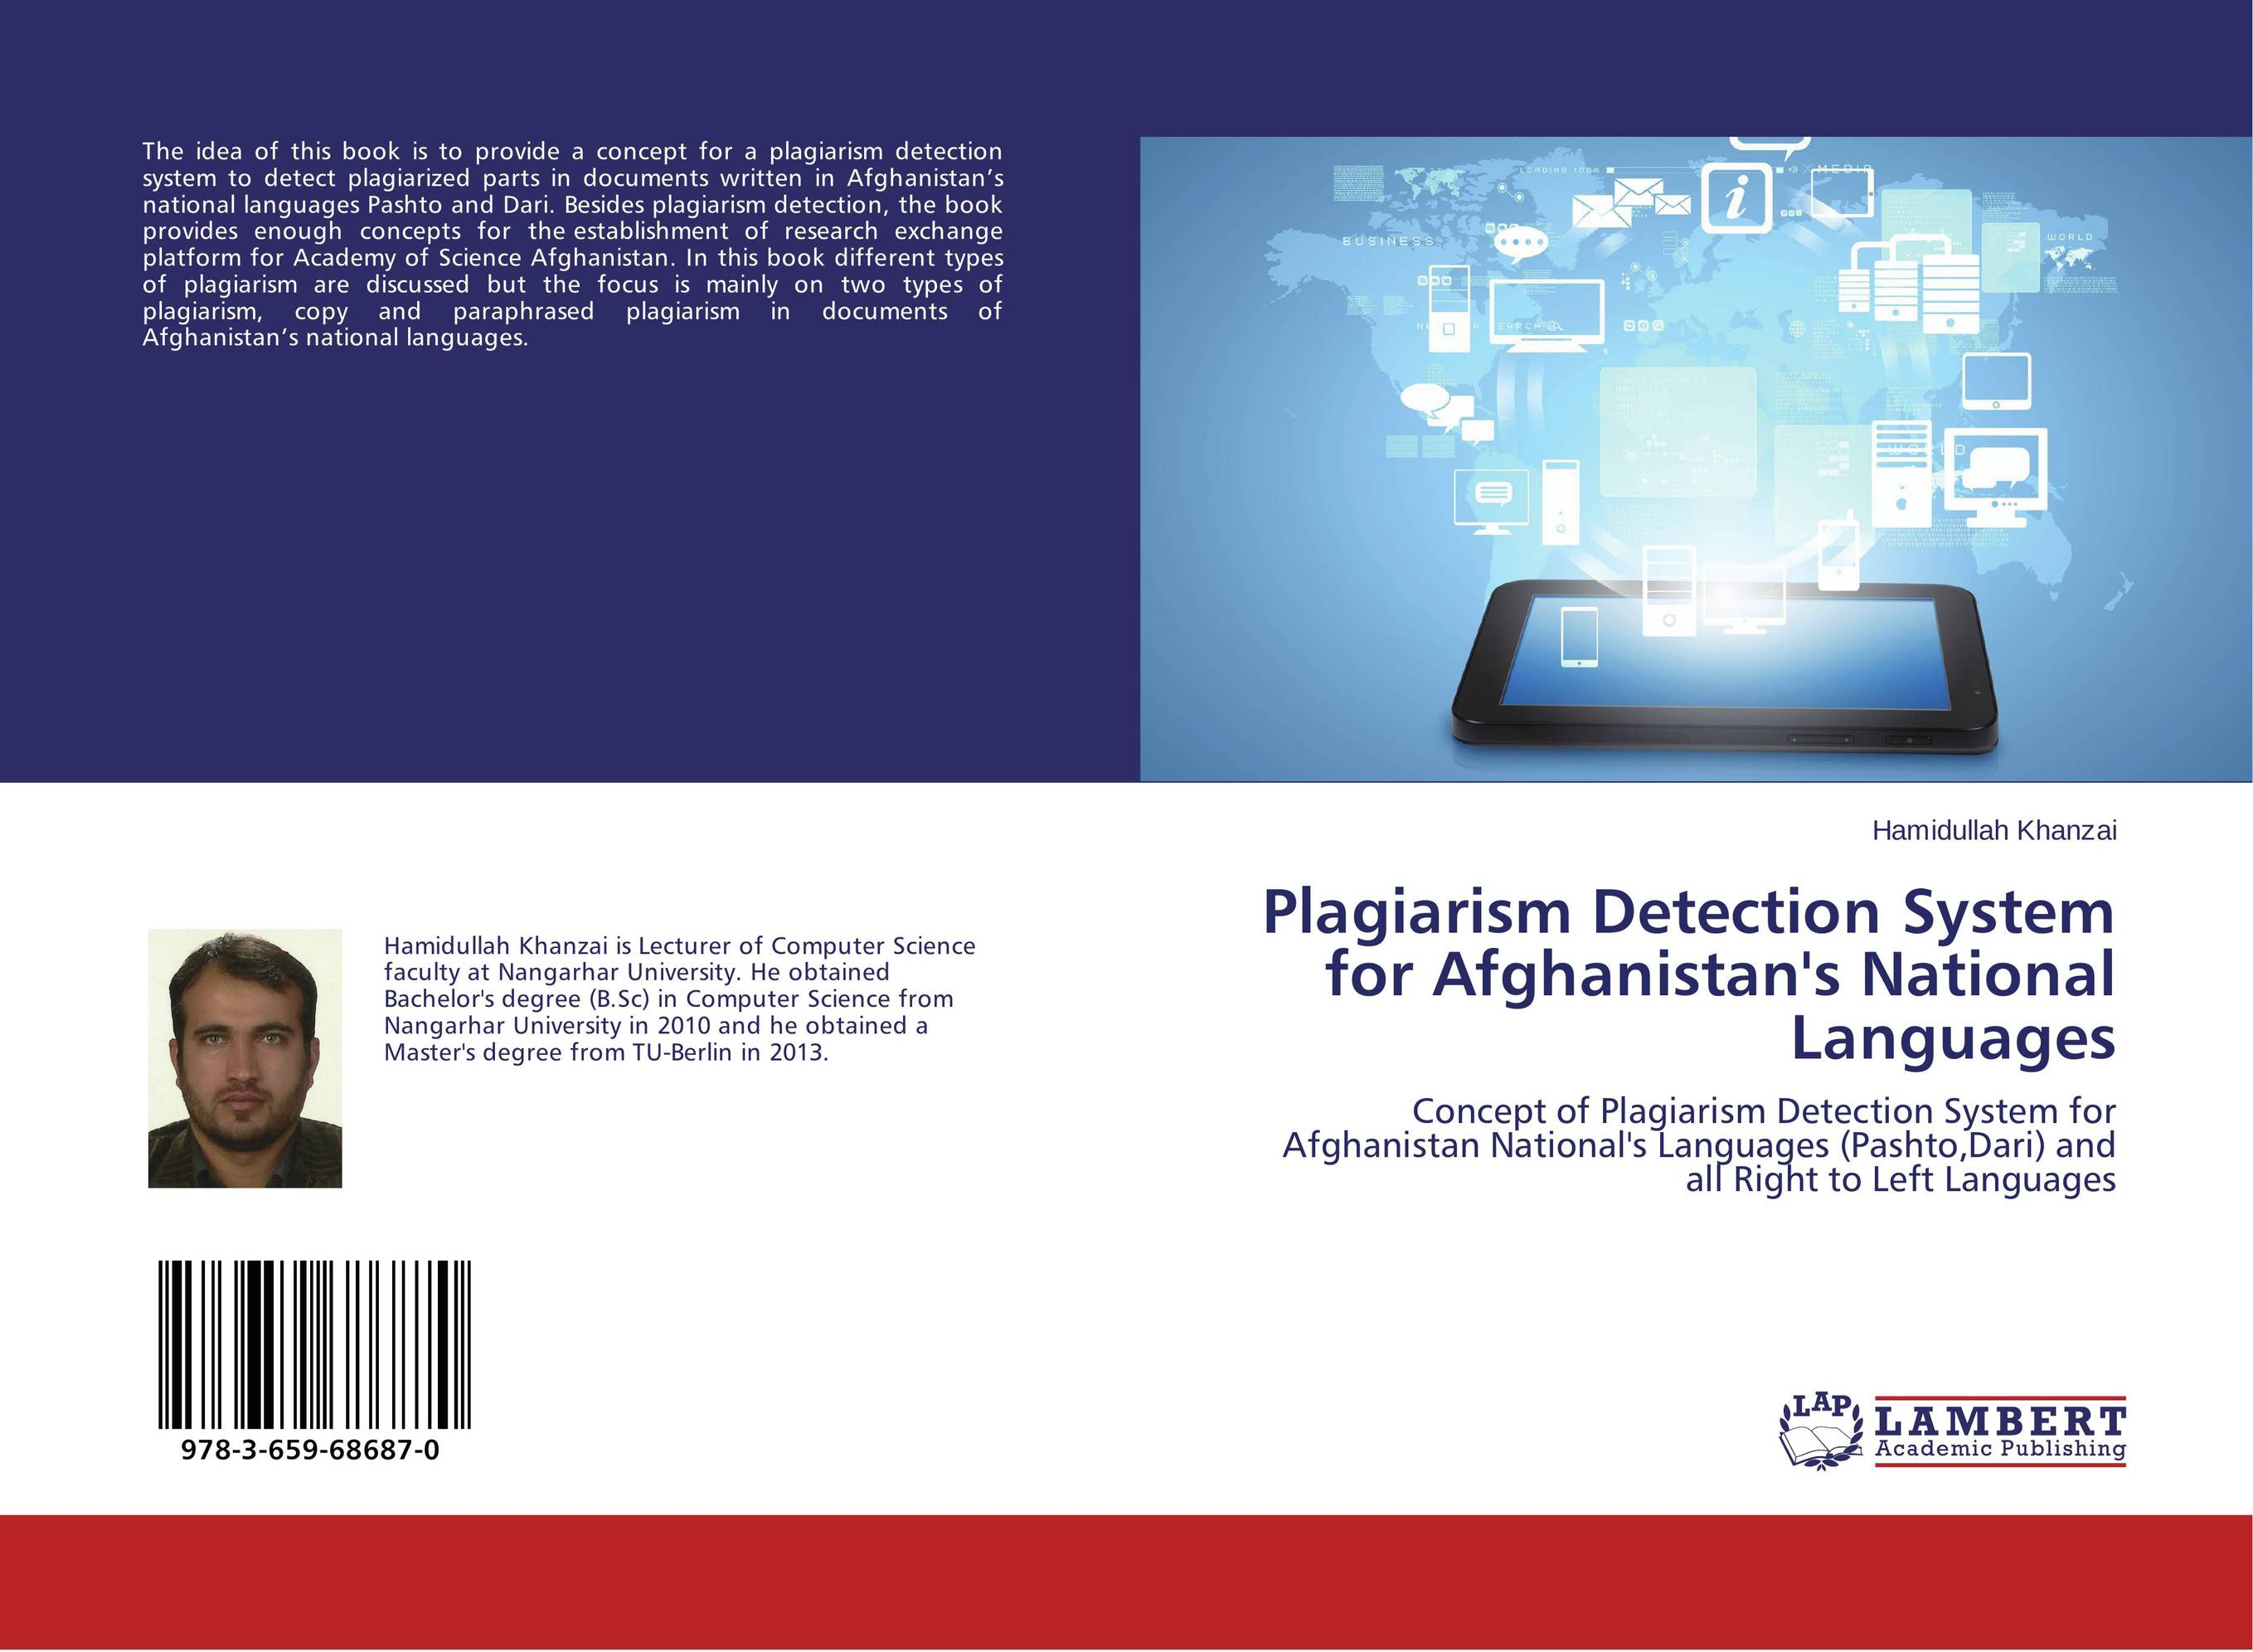 Plagiarism Detection System for Afghanistan's National Languages peter j westwick the national labs – science in an american system 1947–1974